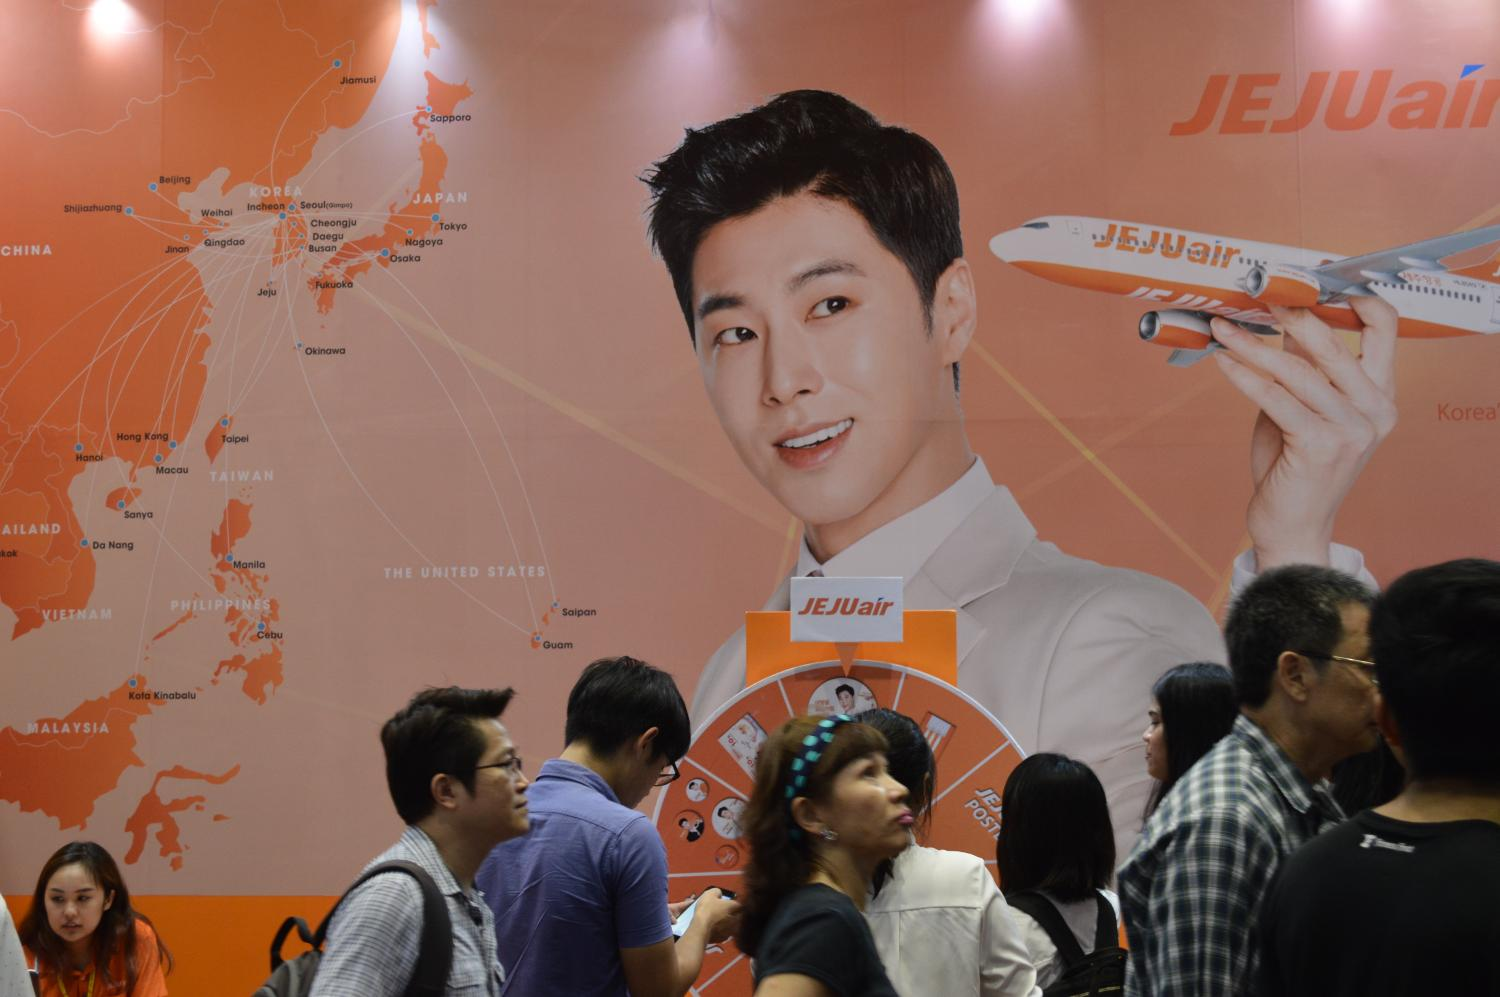 An ad for Jeju Air. Amid the coronavirus outbreak, operators are offering cheap tour packages to high-risk countries like South Korea. Worrapon Phayakum